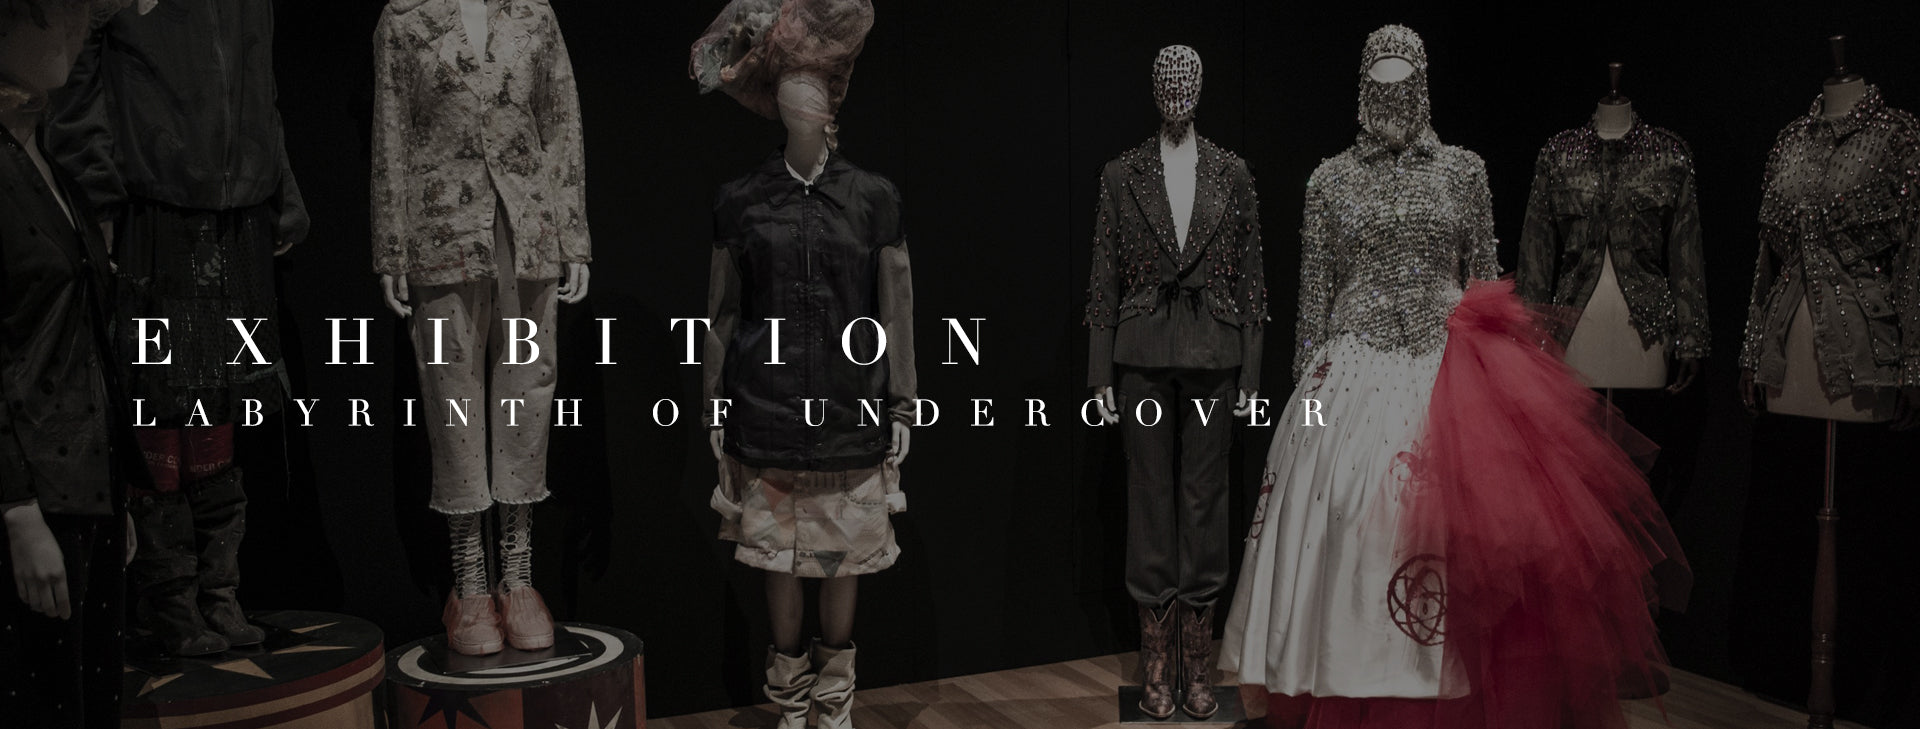 Exhibition: Labyrinth of Undercover